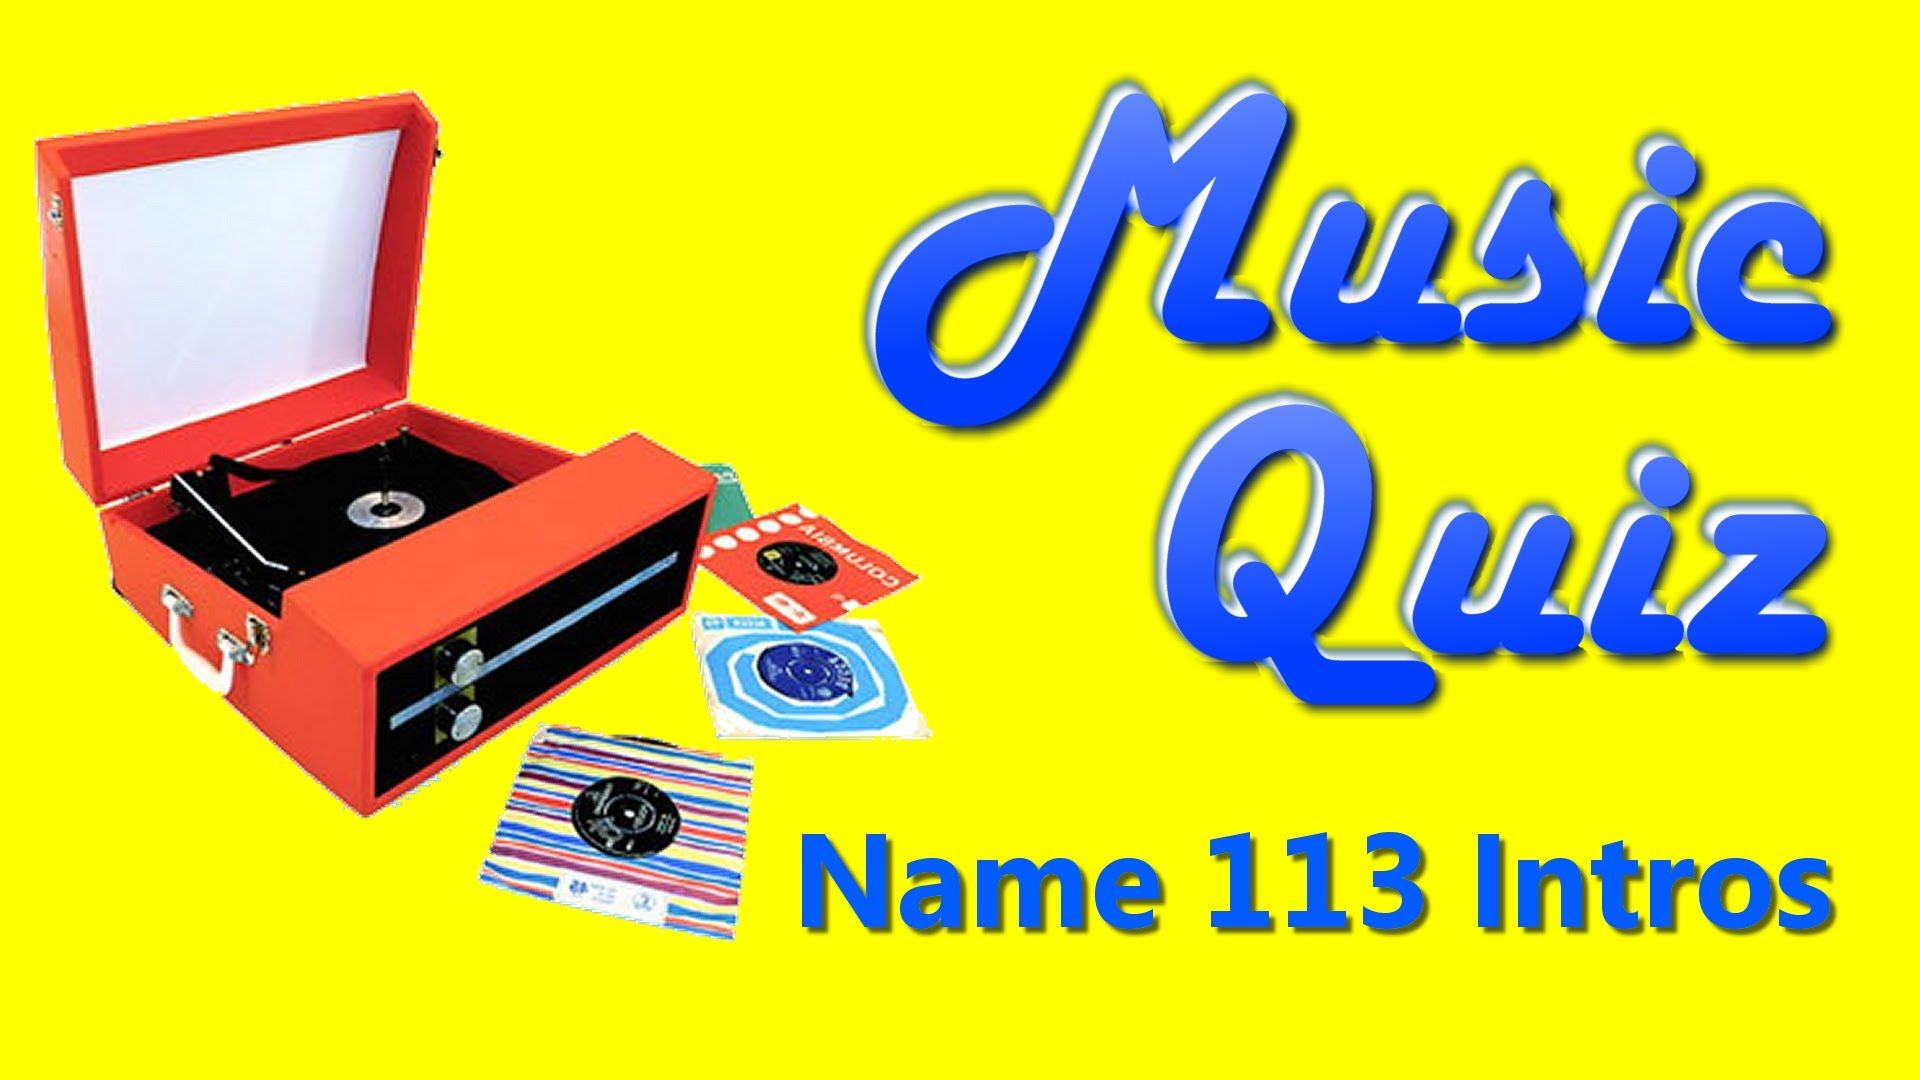 00/'s Music Trivia Game Quiz Perfect Novelty Gift For Music Enthusiasts